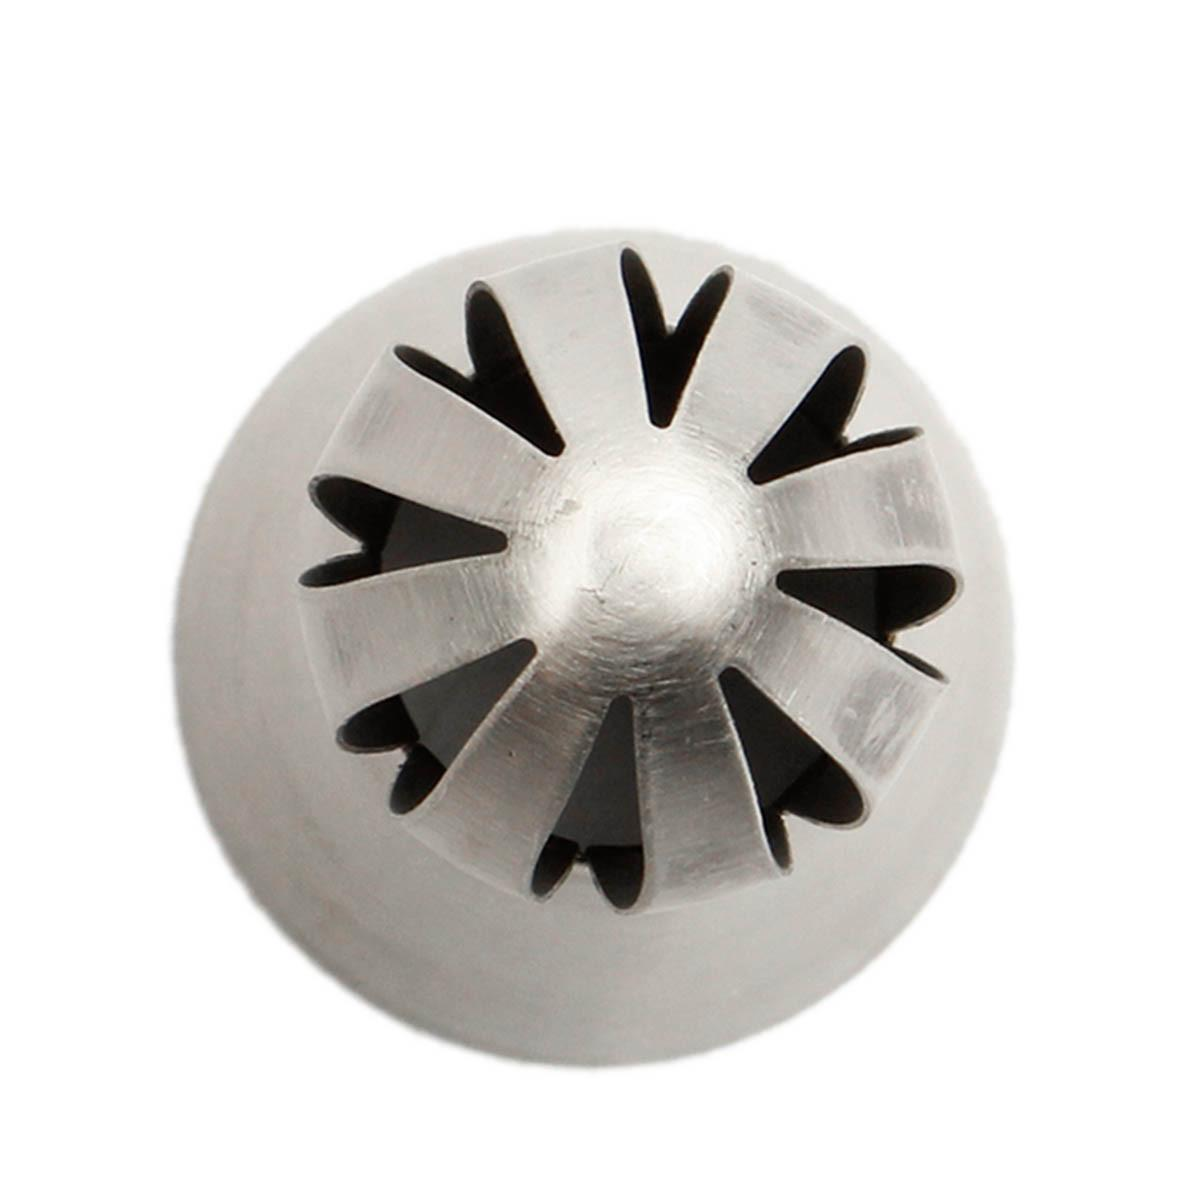 Sphere Ball Shape Flower Icing Piping Nozzles Pastry Tips